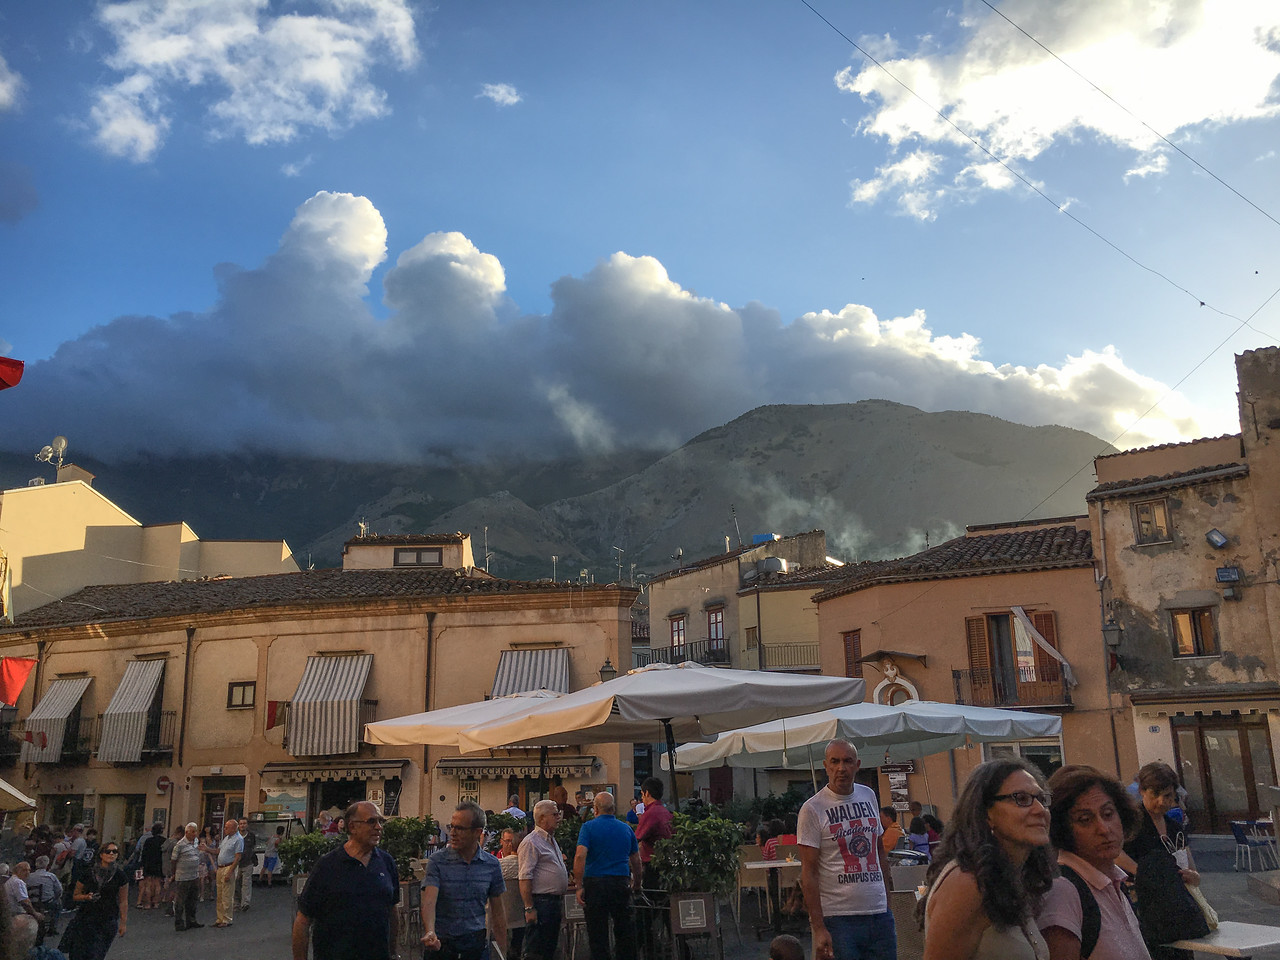 Clouds brewing in Castelbueno